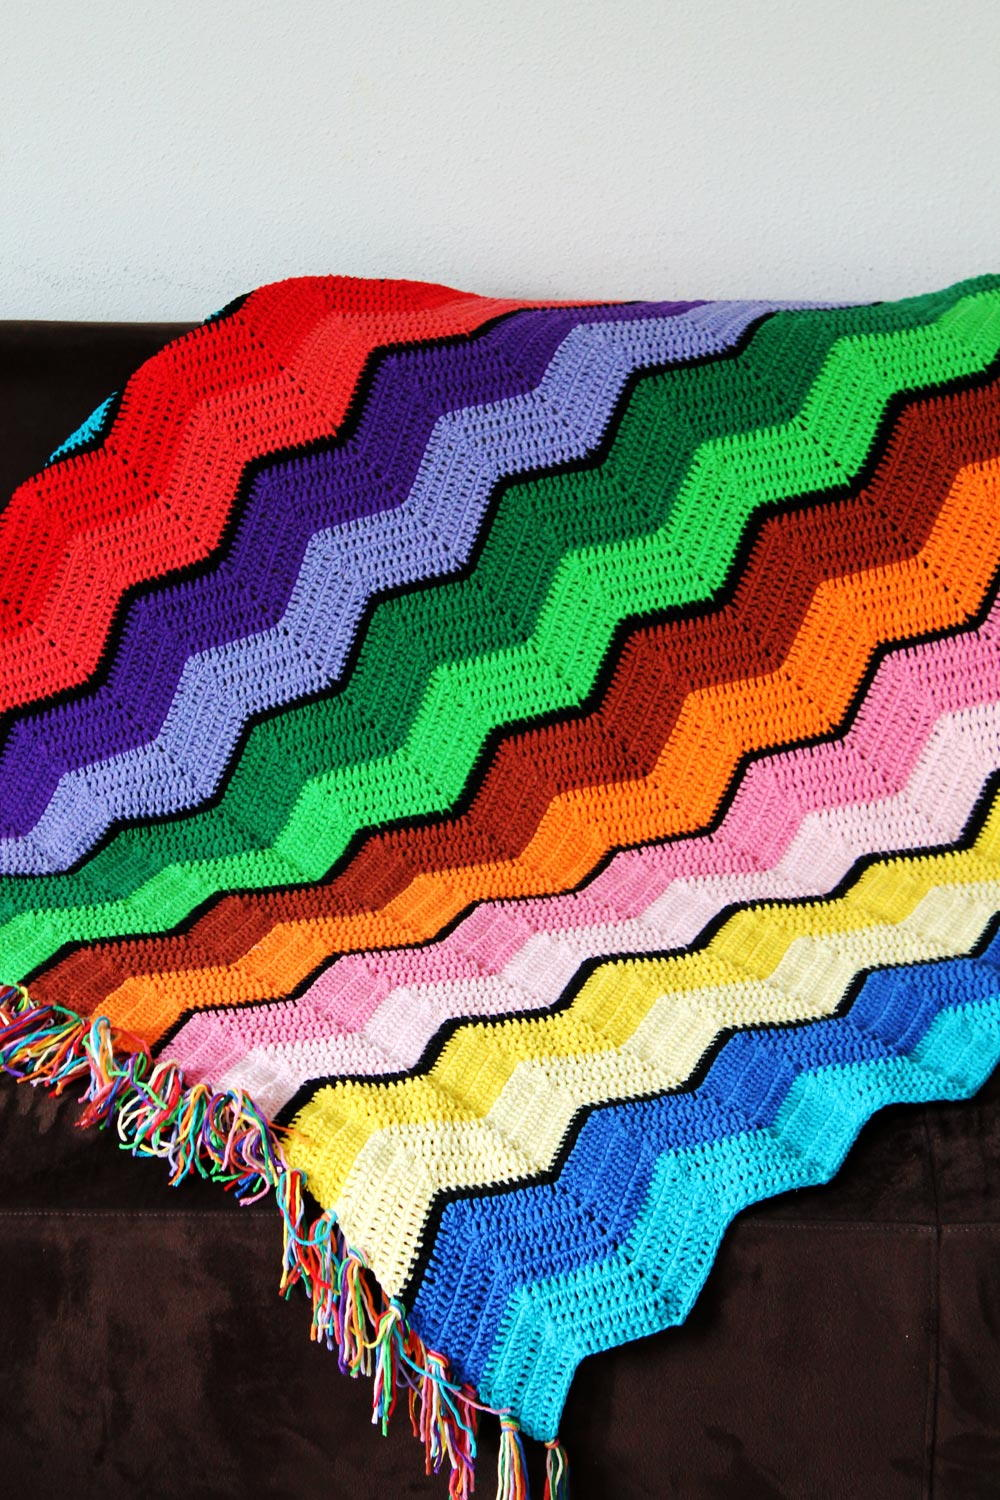 Beginner Crochet Ripple Afghan Pattern : 51 Free Crochet Blanket Patterns for Beginners ...